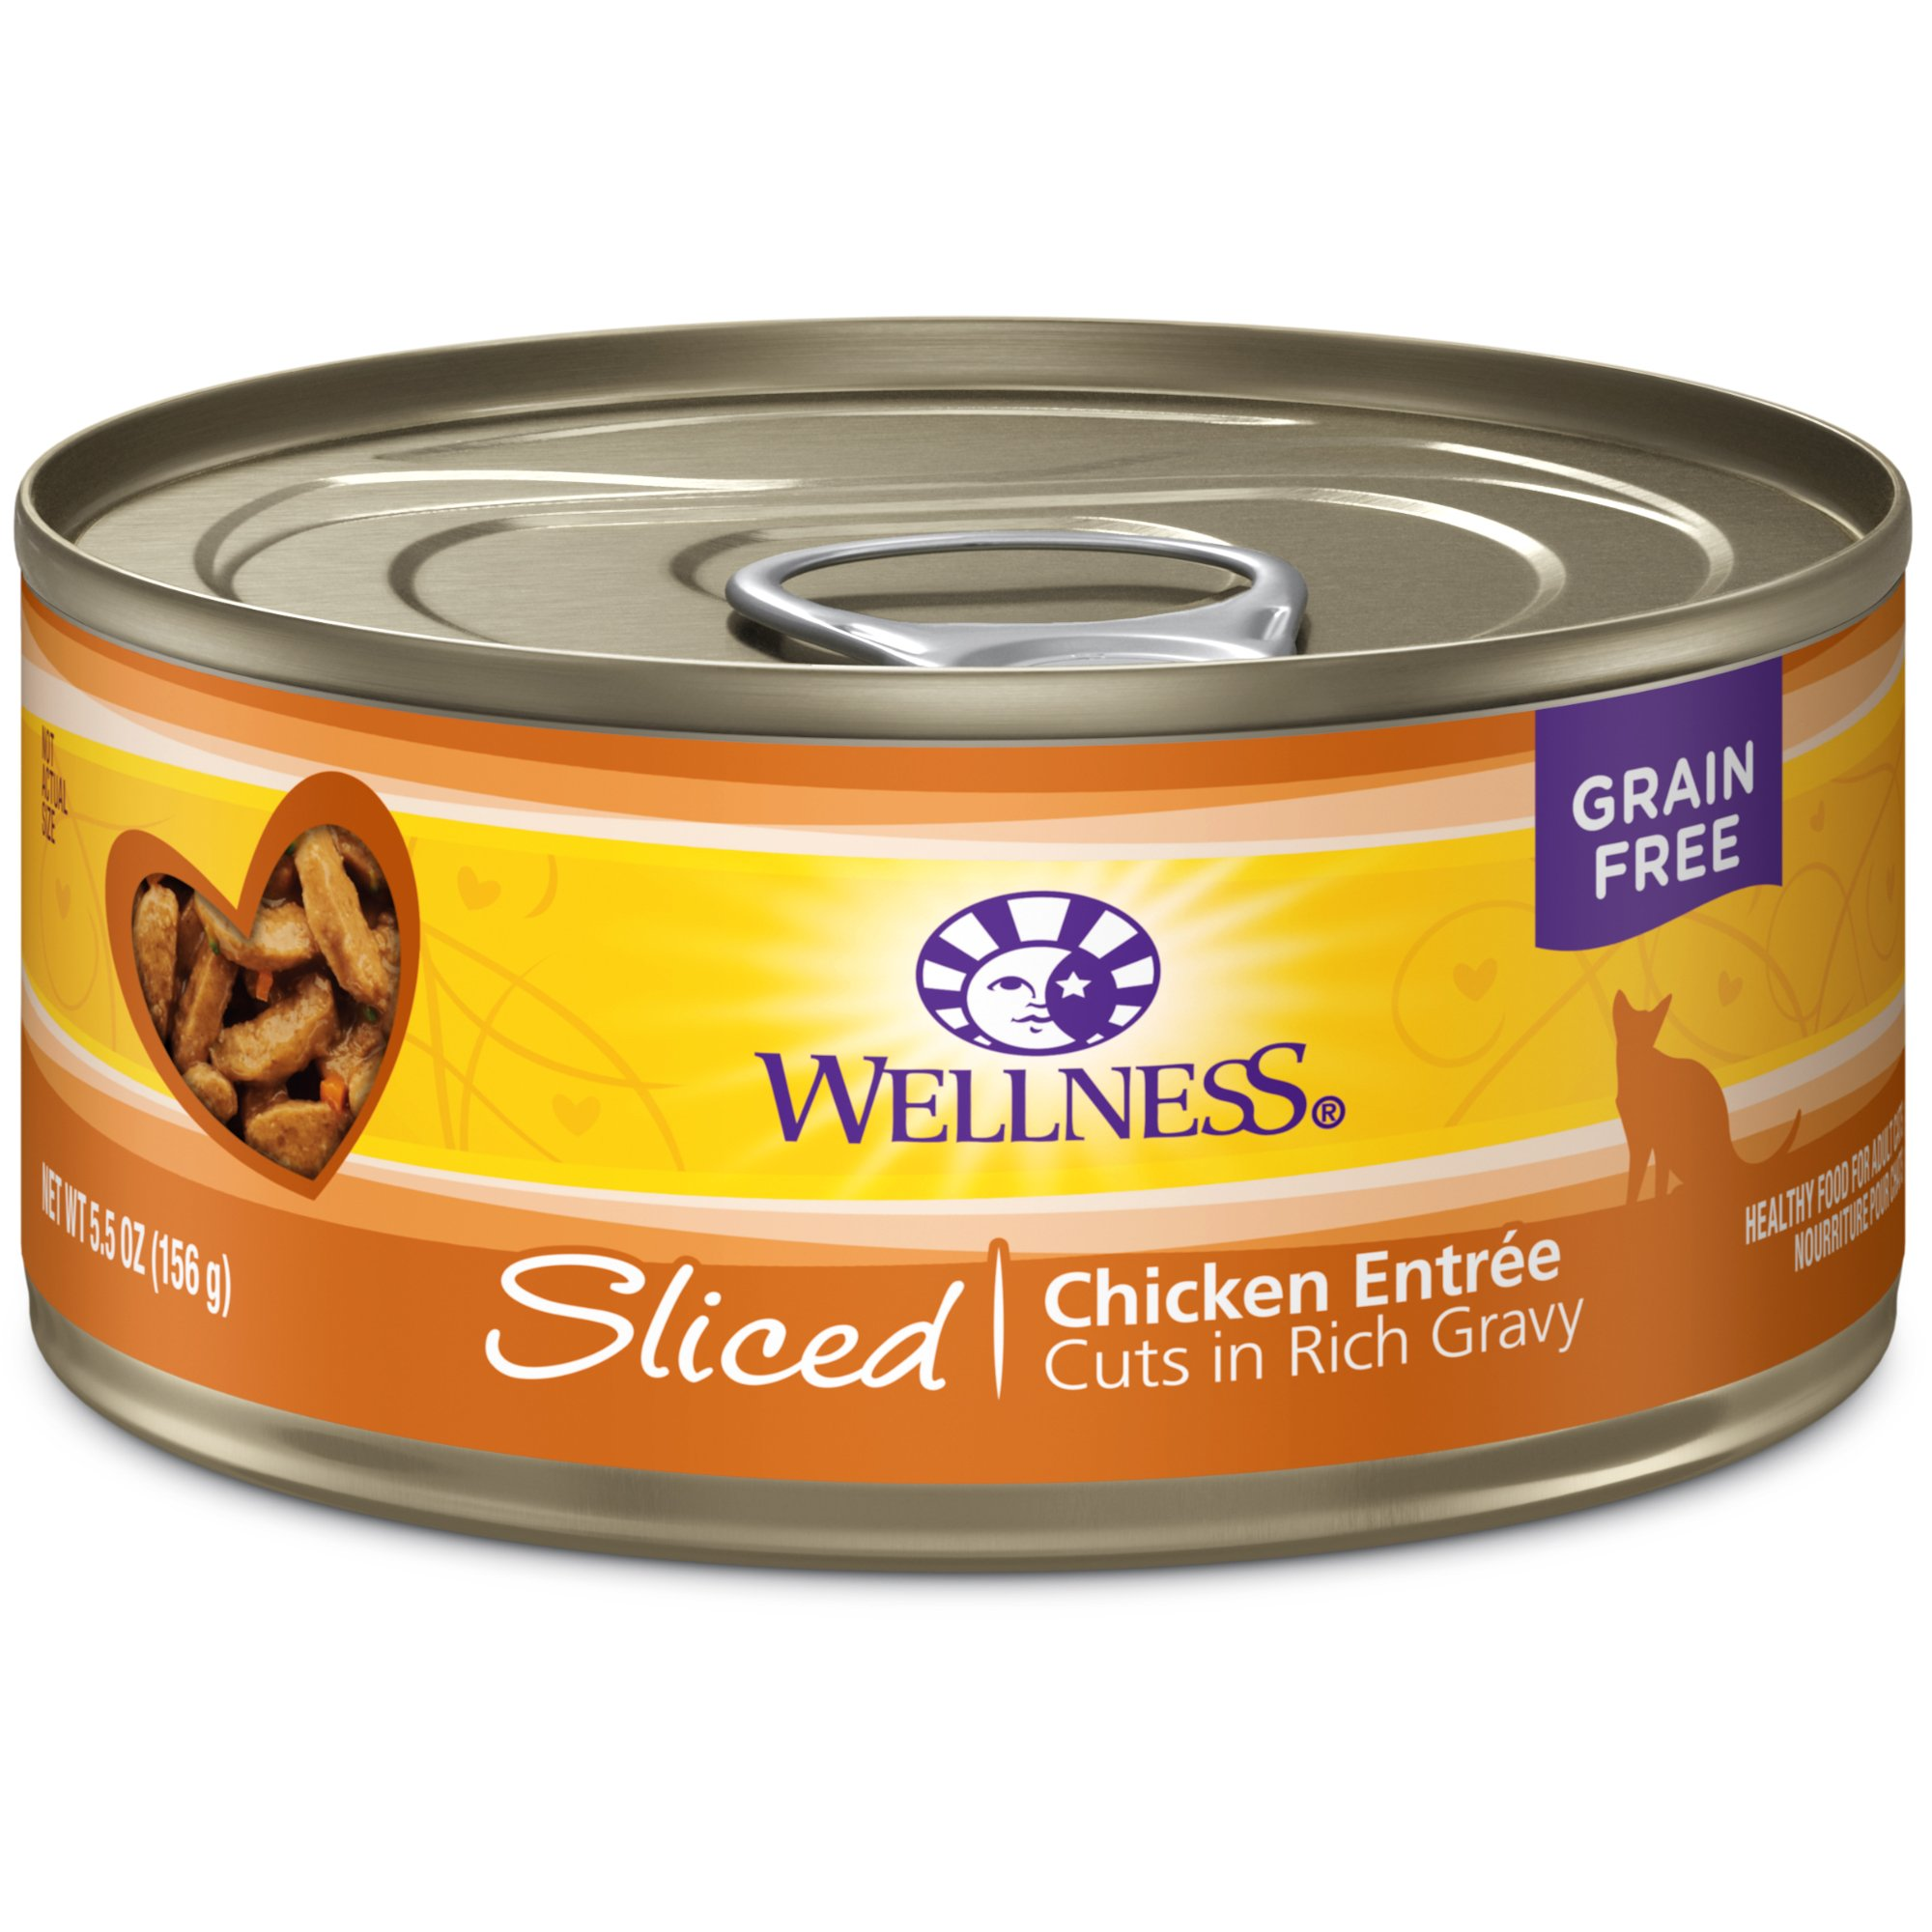 Wellness Complete Health Natural Grain Free Wet Canned Cat Food, Sliced Chicken Entrée, 5.5-Ounce Can (Pack Of 24) by Wellness Natural Pet Food